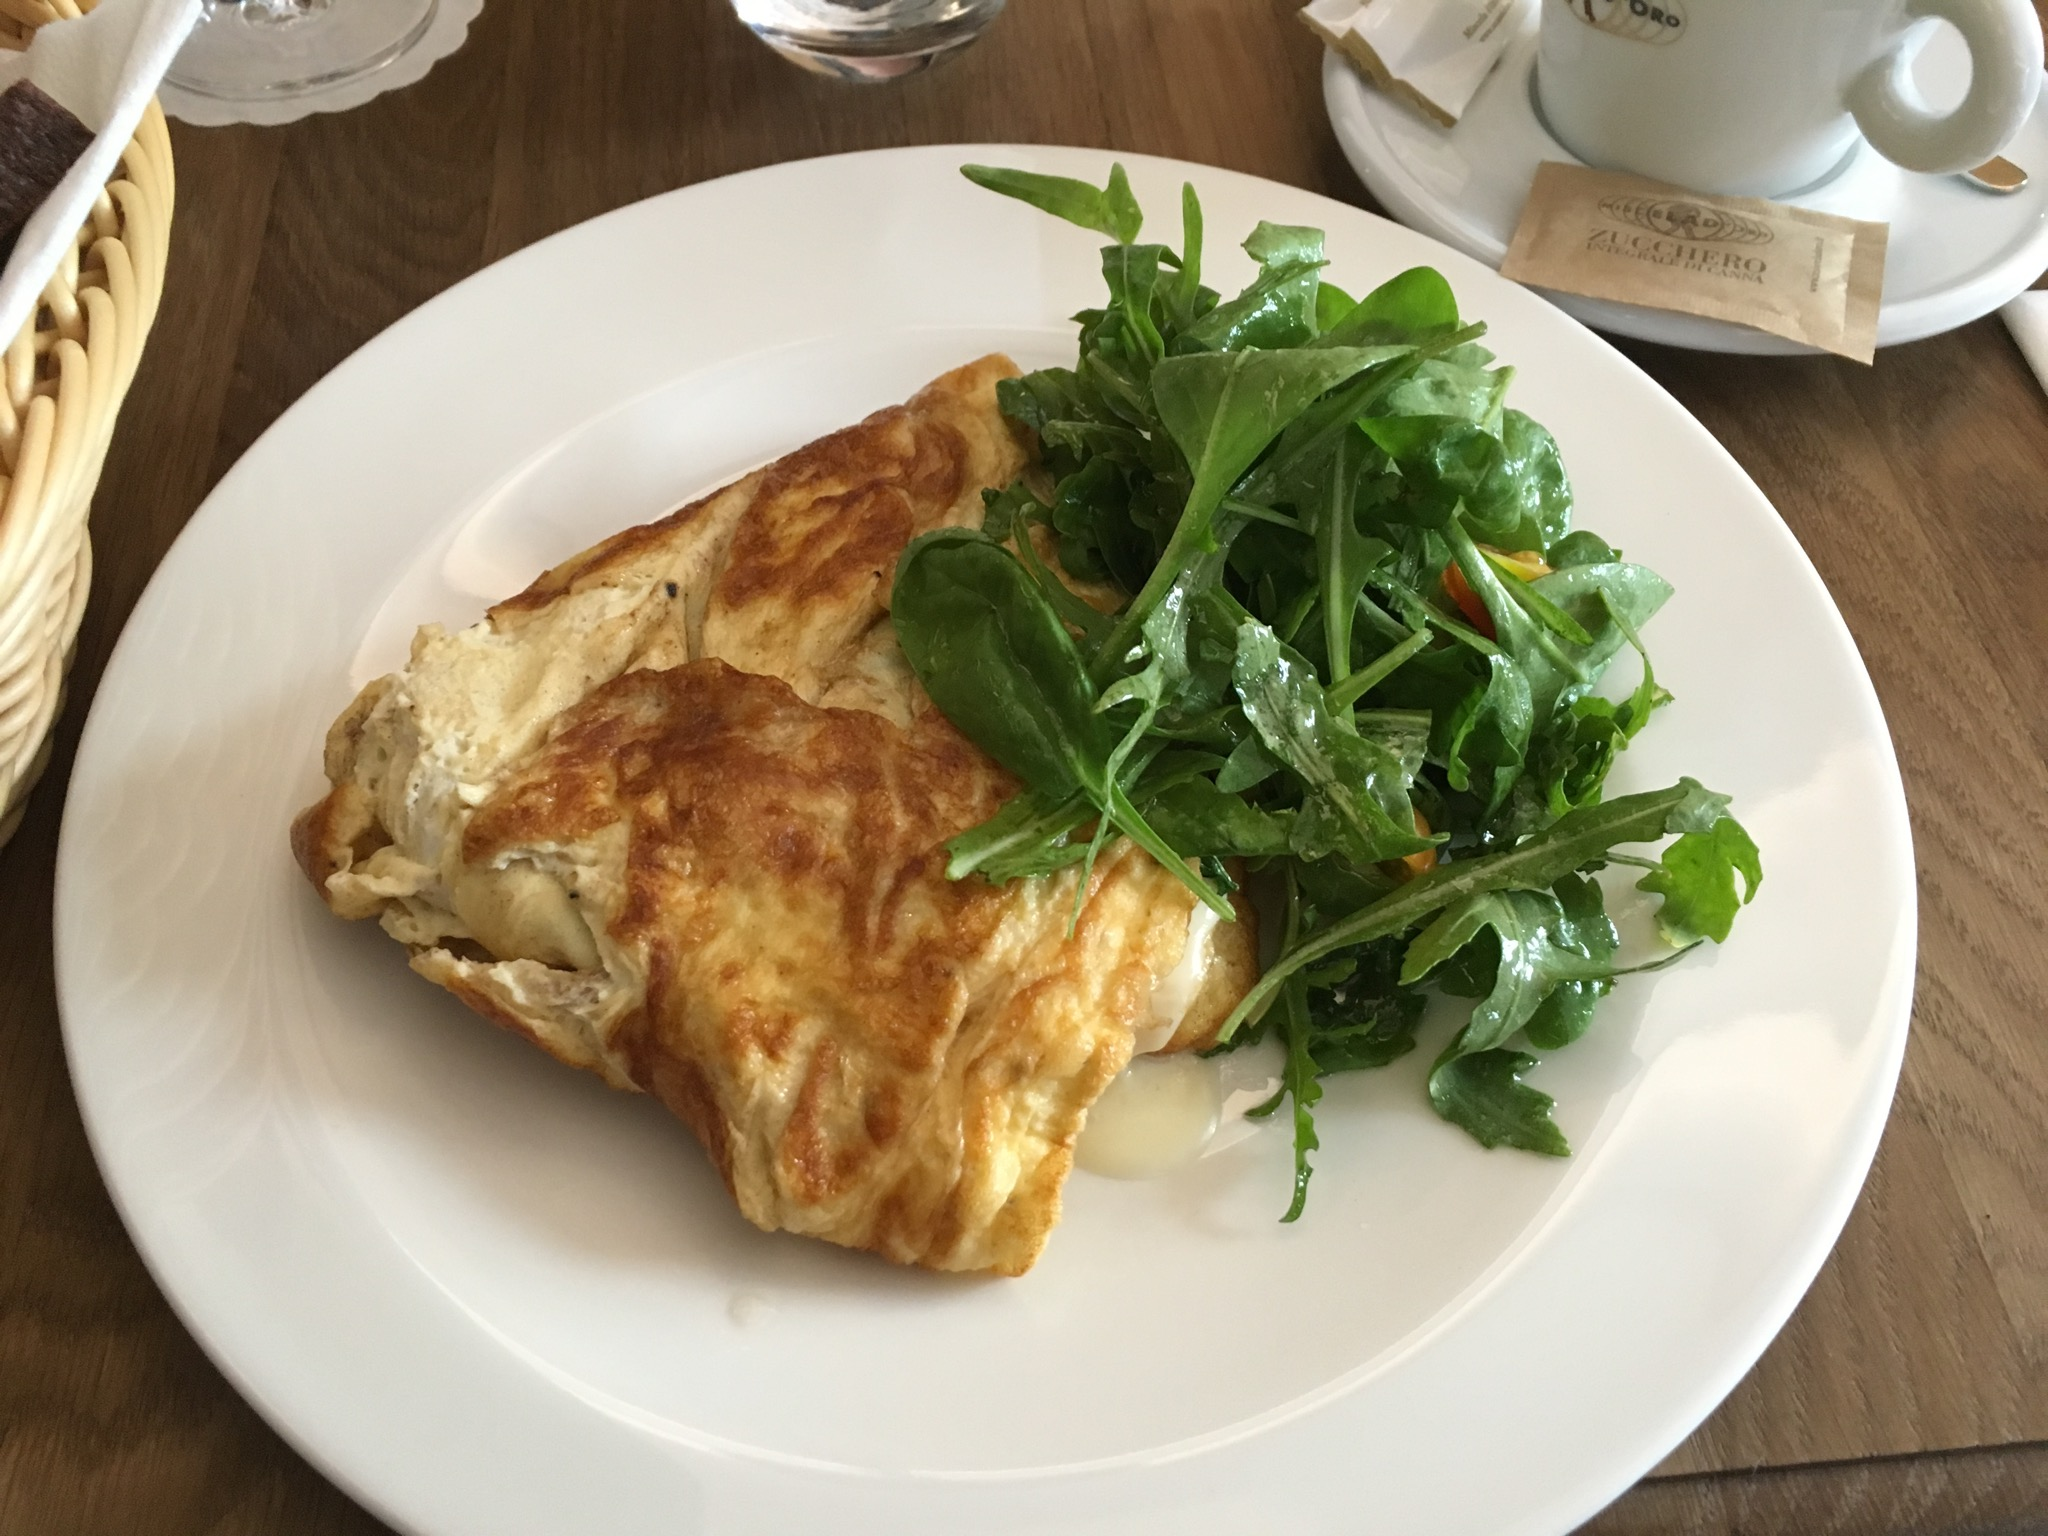 Omlette with cheese brie and small salad